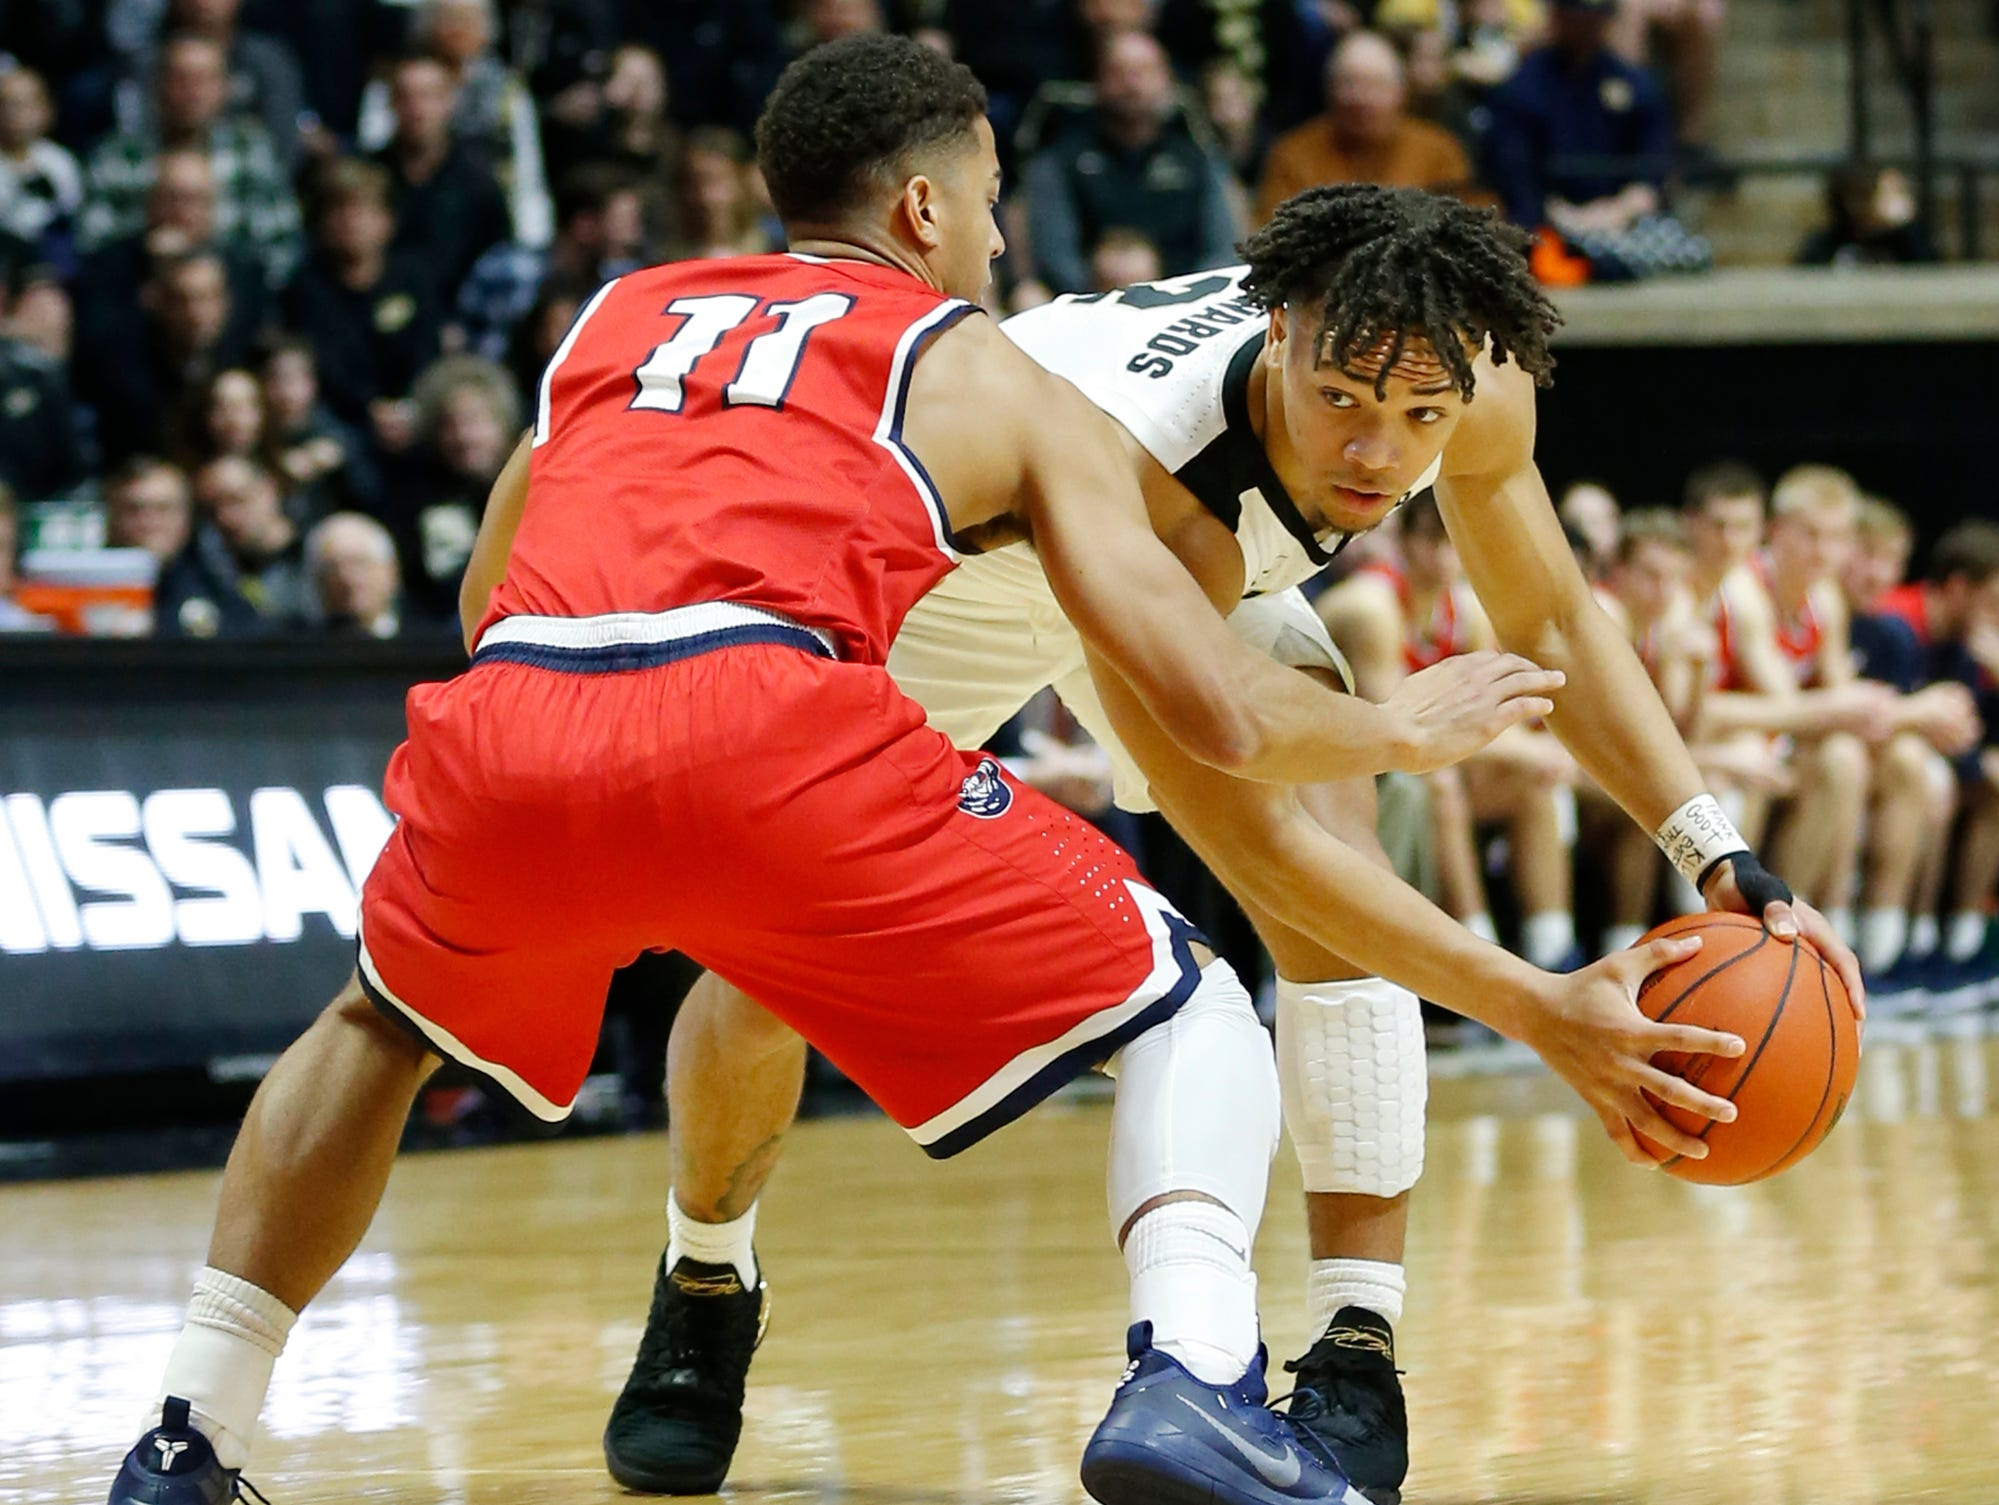 Carsen Edwards of Purdue looks to drive against Kevin McClain of Belmont Saturday, December 29, 2018, at Mackey Arena. Purdue defeated Belmont 73-62.